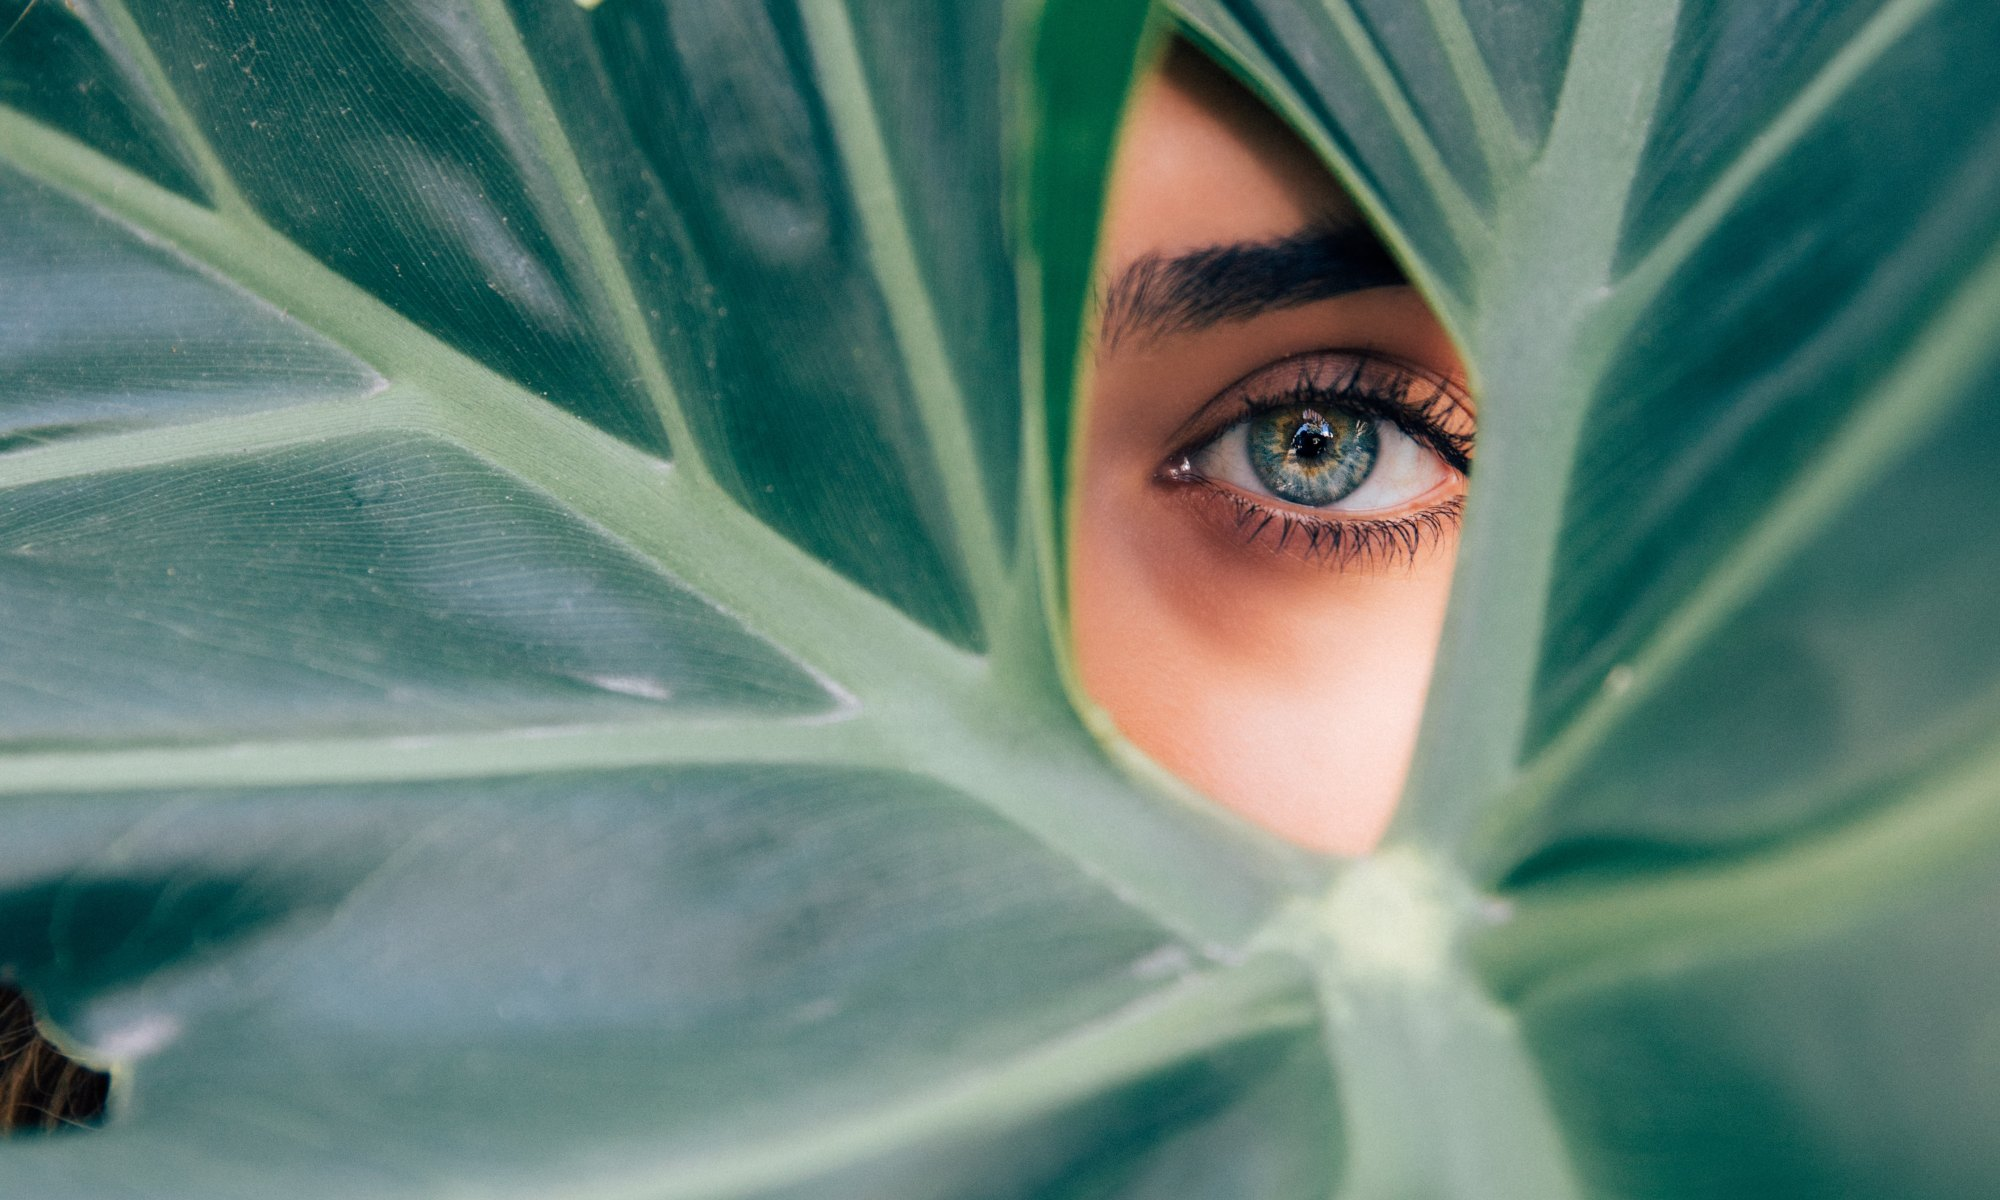 woman with green eye peaking through green plants